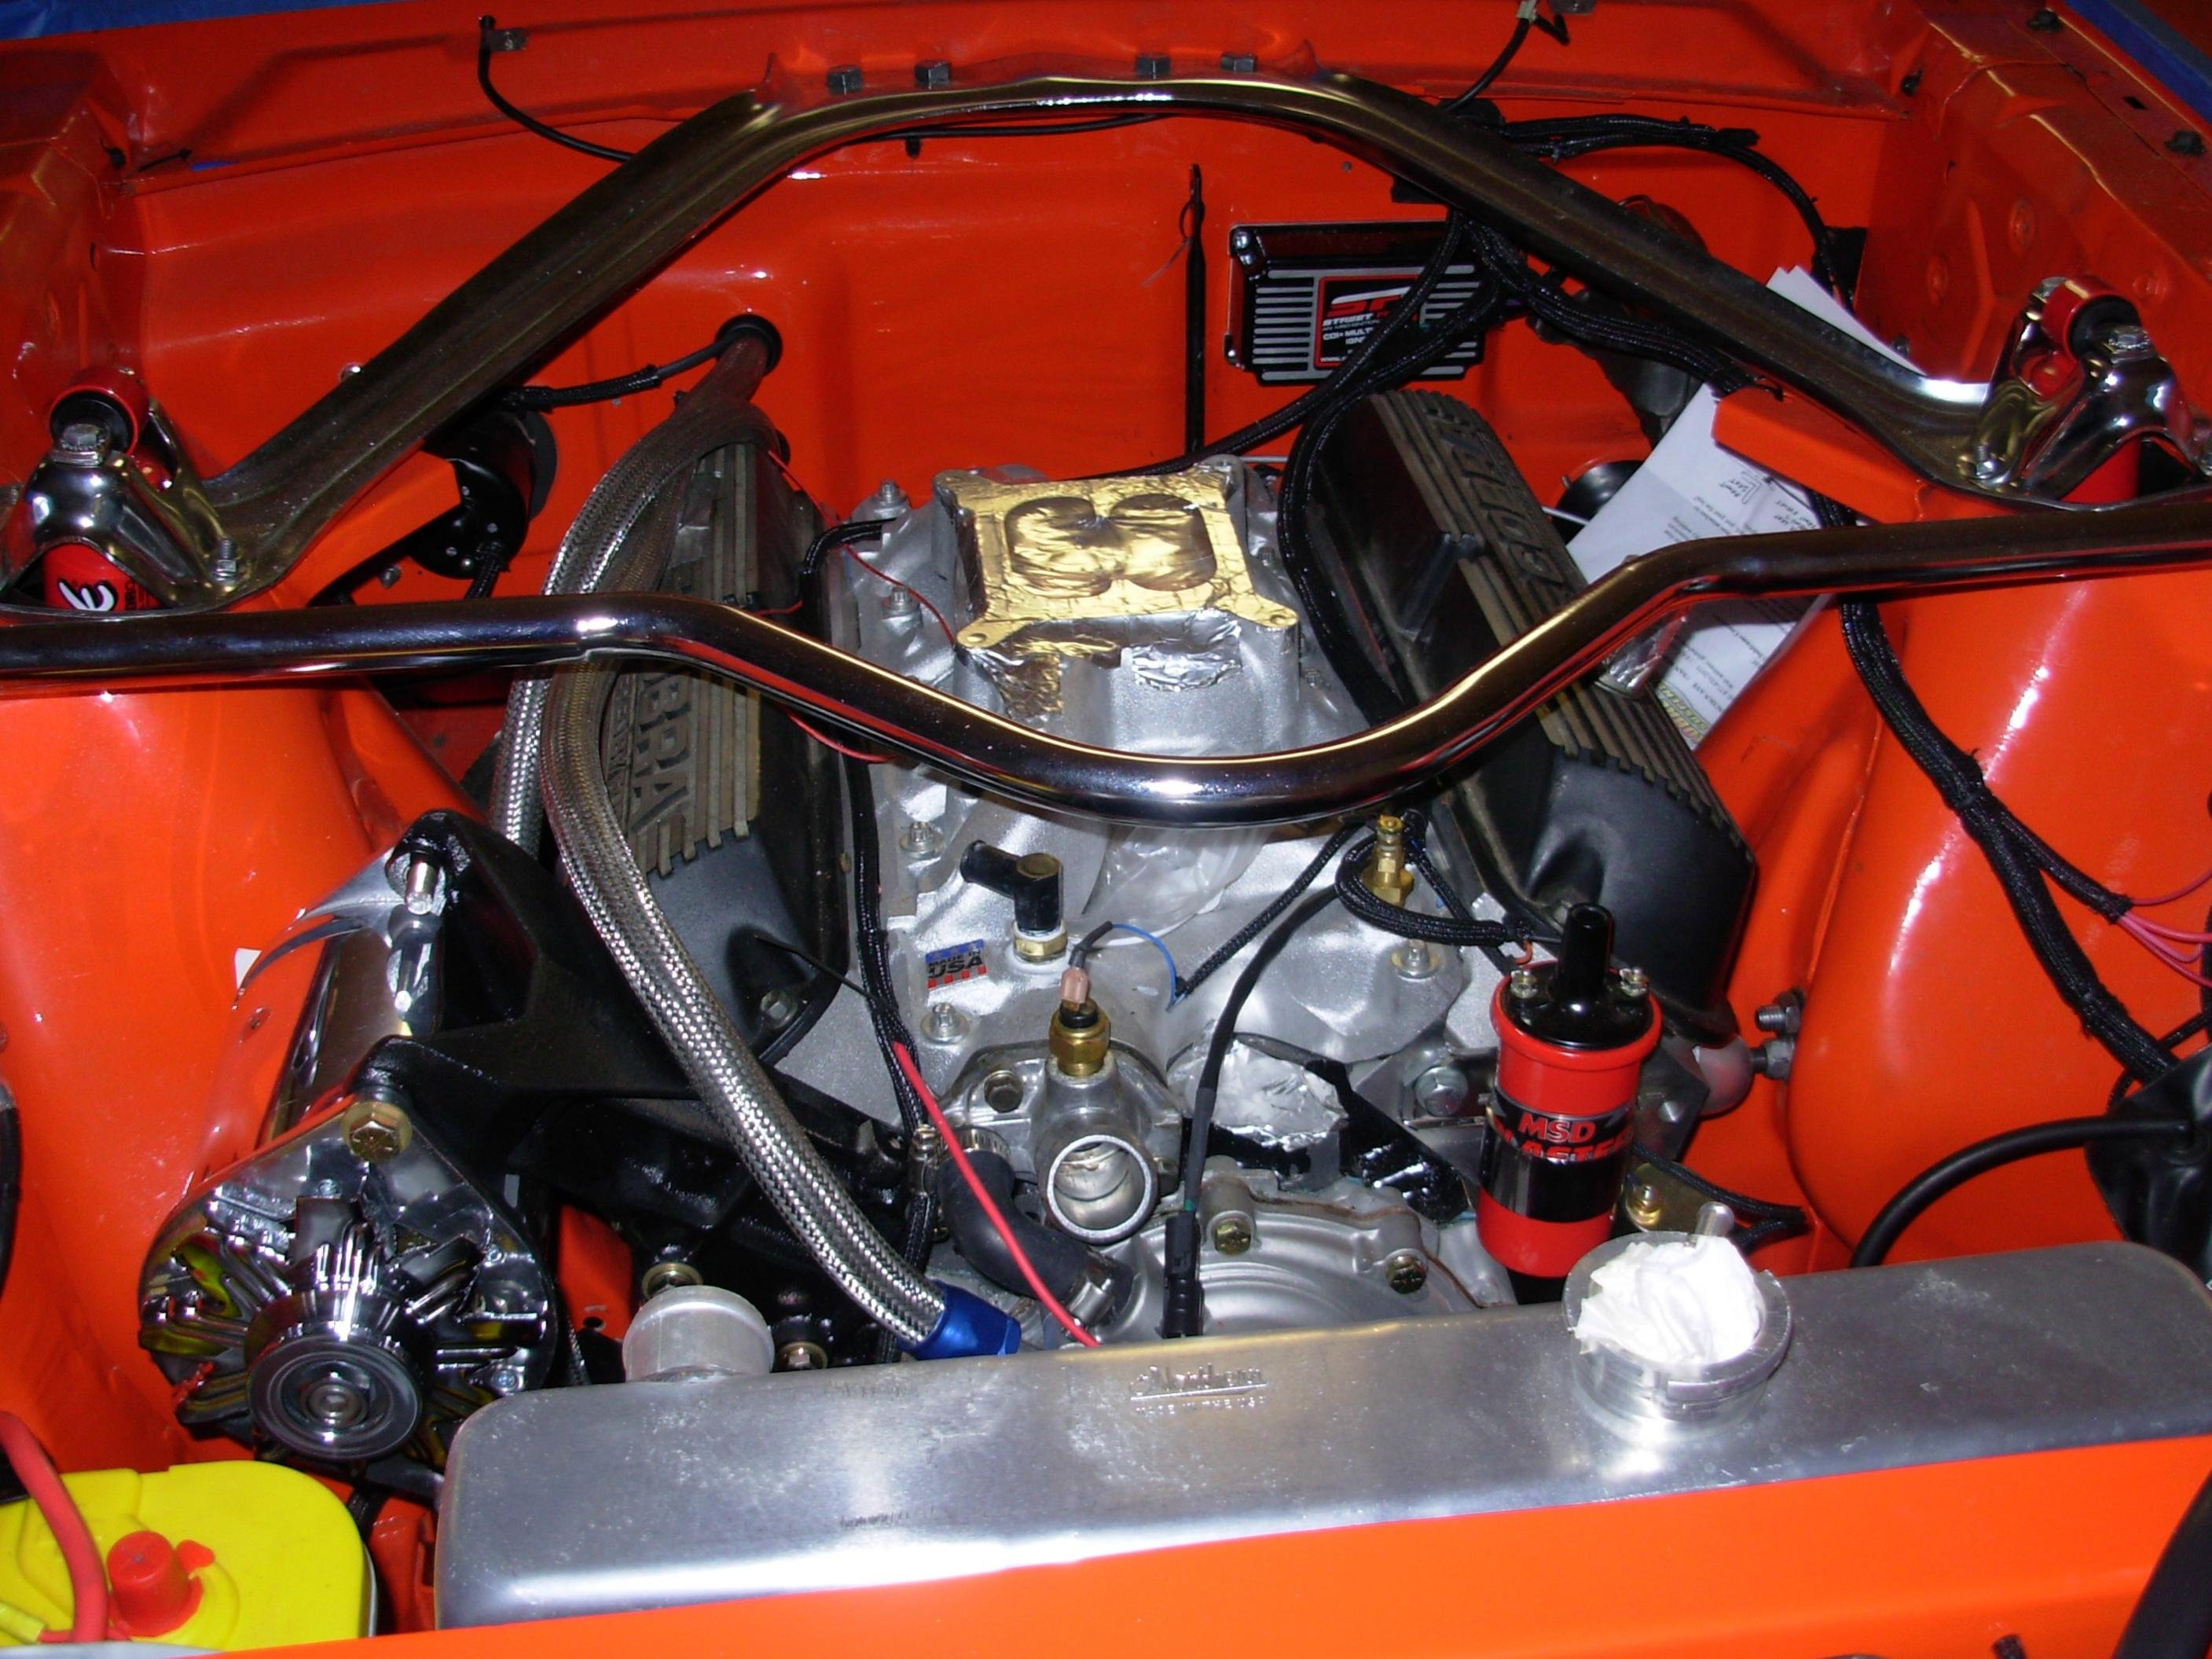 Electric Fans With Relay Wiring Ford Mustang Forum - How to wire relay in car